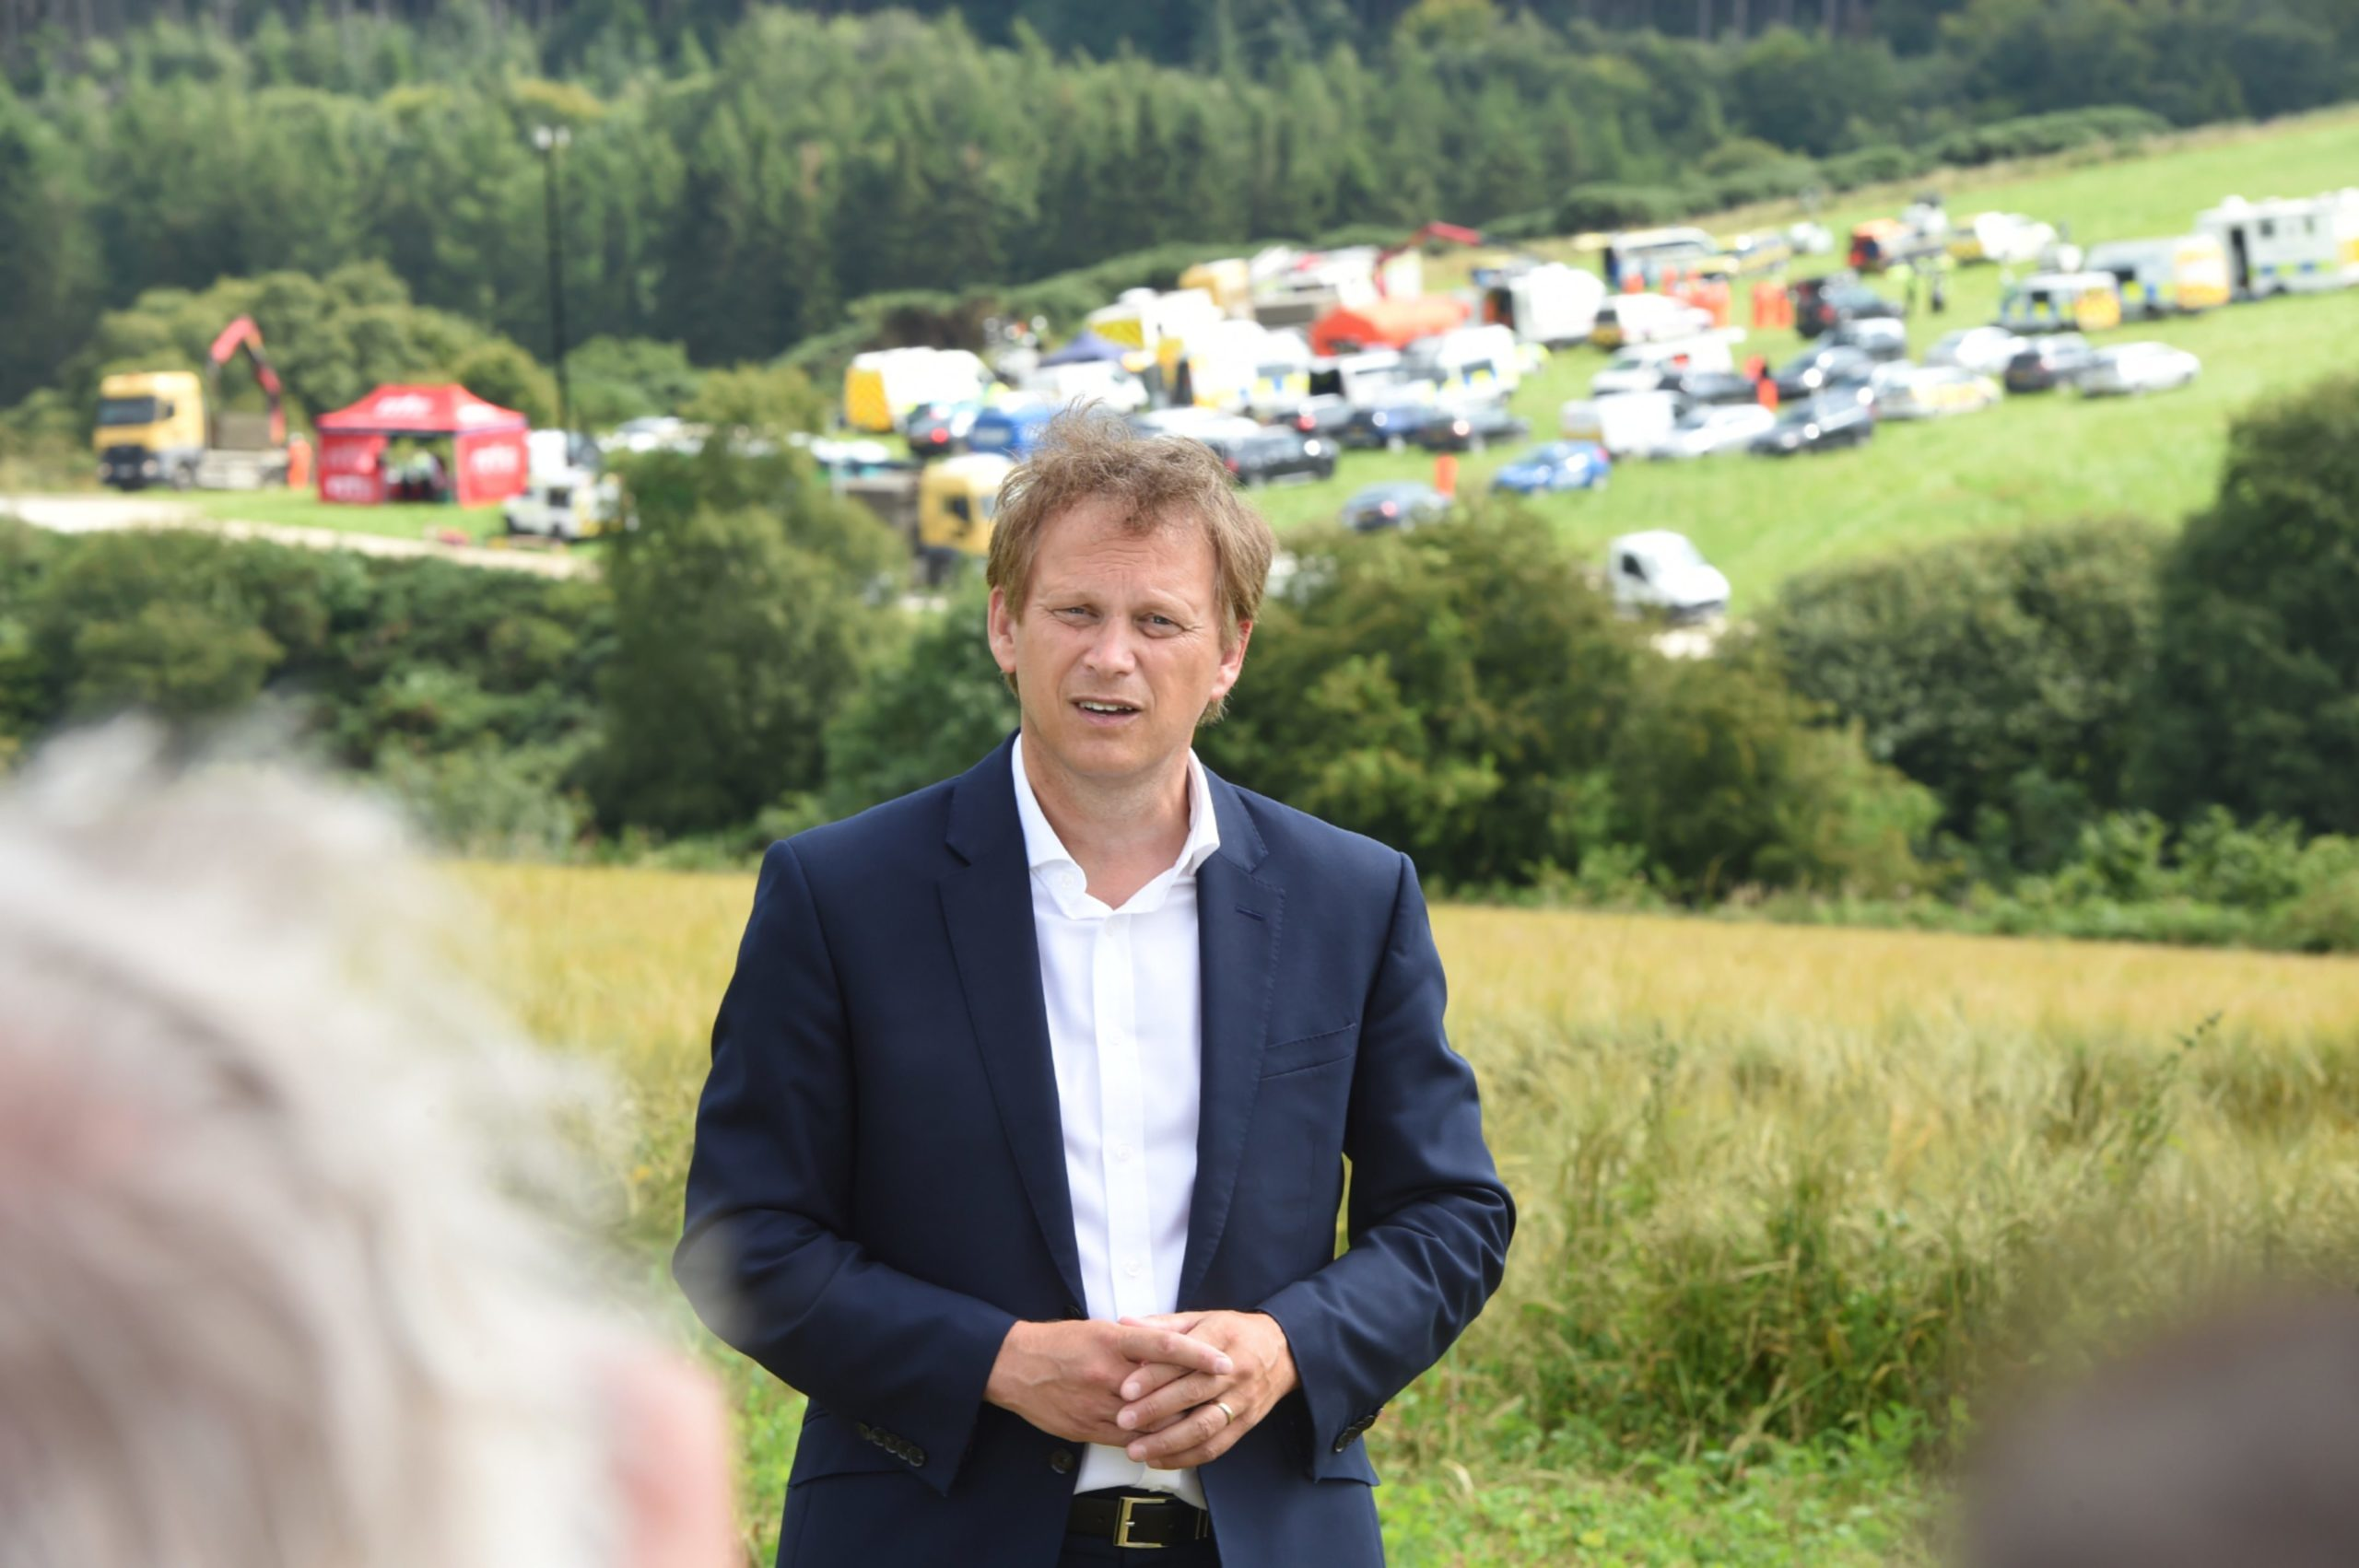 Grant Shapps Secretary of State for Transport speaking with the media at Stonehaven. Pictures by Darrell Benns.